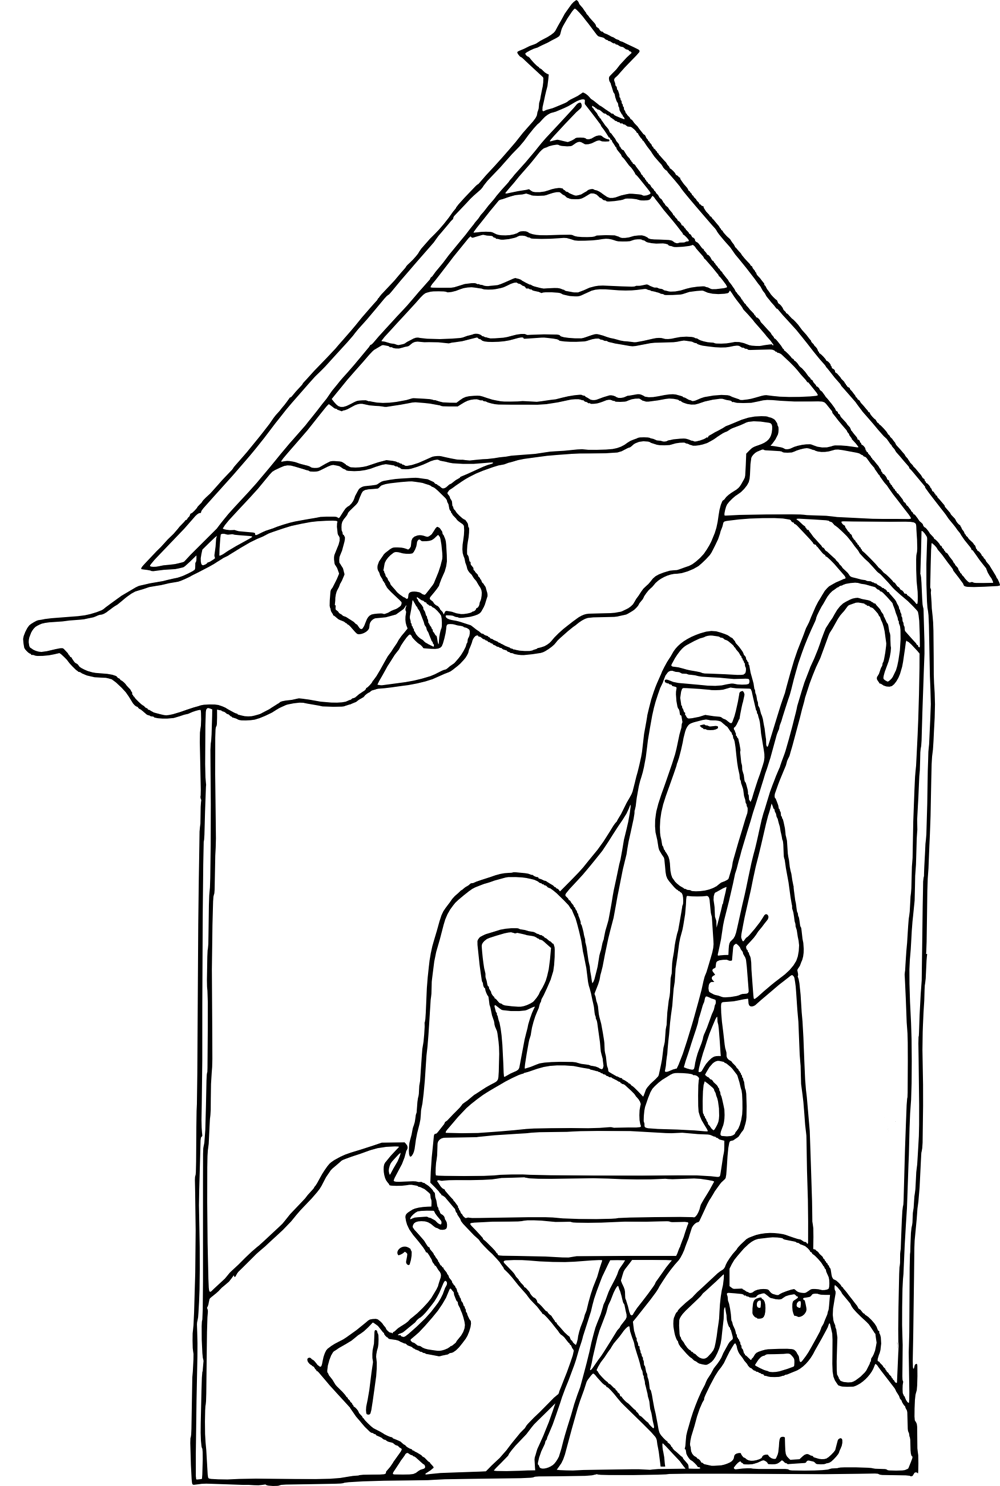 coloring pages about jesus - baby jesus coloring pages best coloring pages for kids